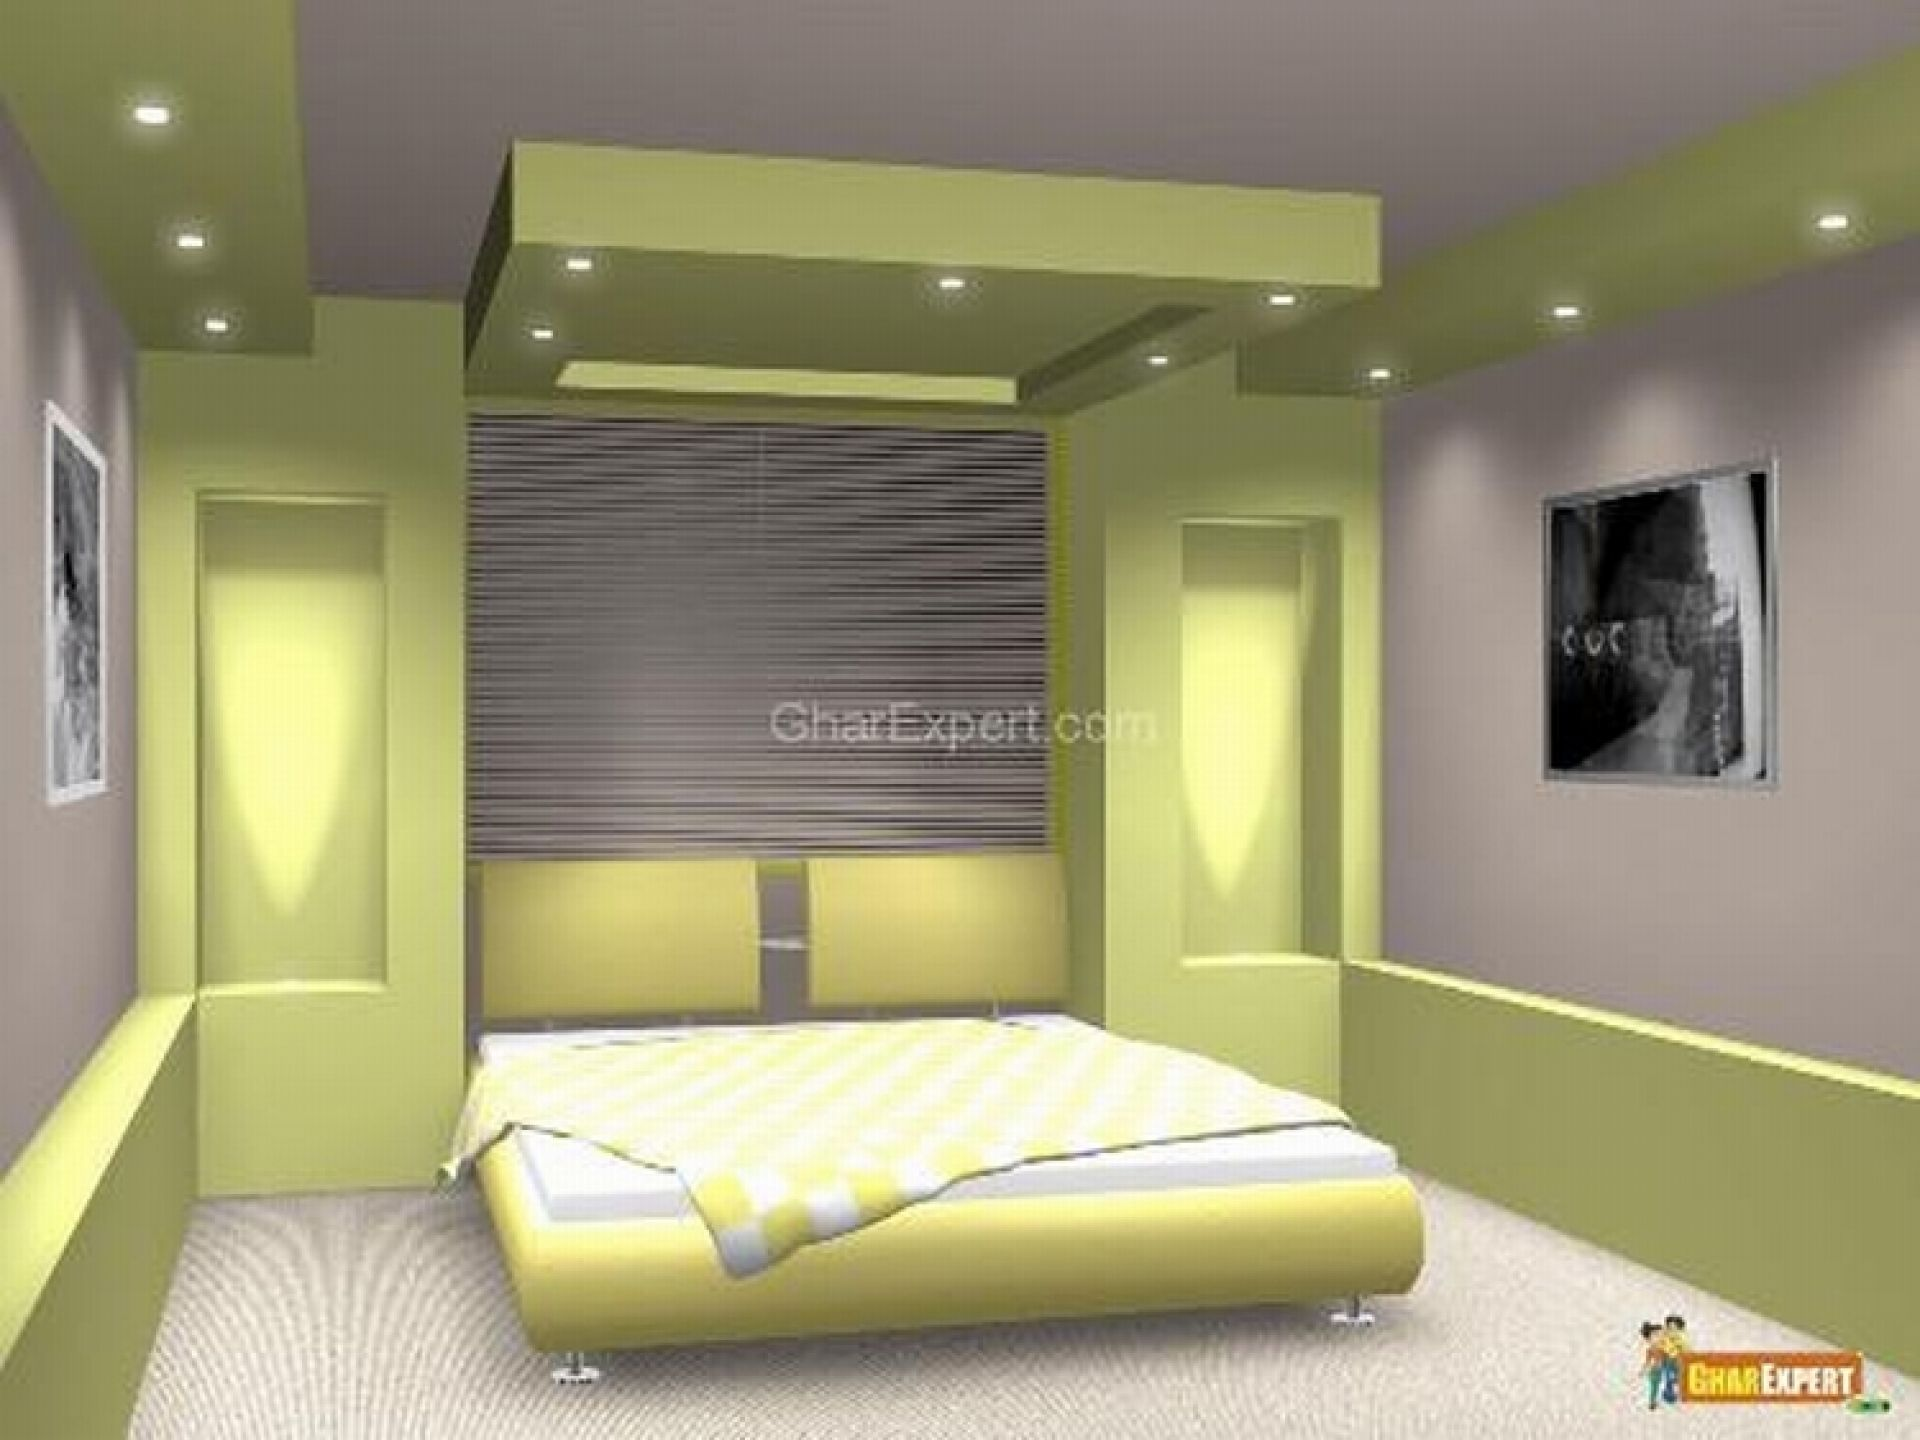 Bedroom Design For Small Space home-decor-1920x1440-bedroom-design-for-small-spaces-with-lighting